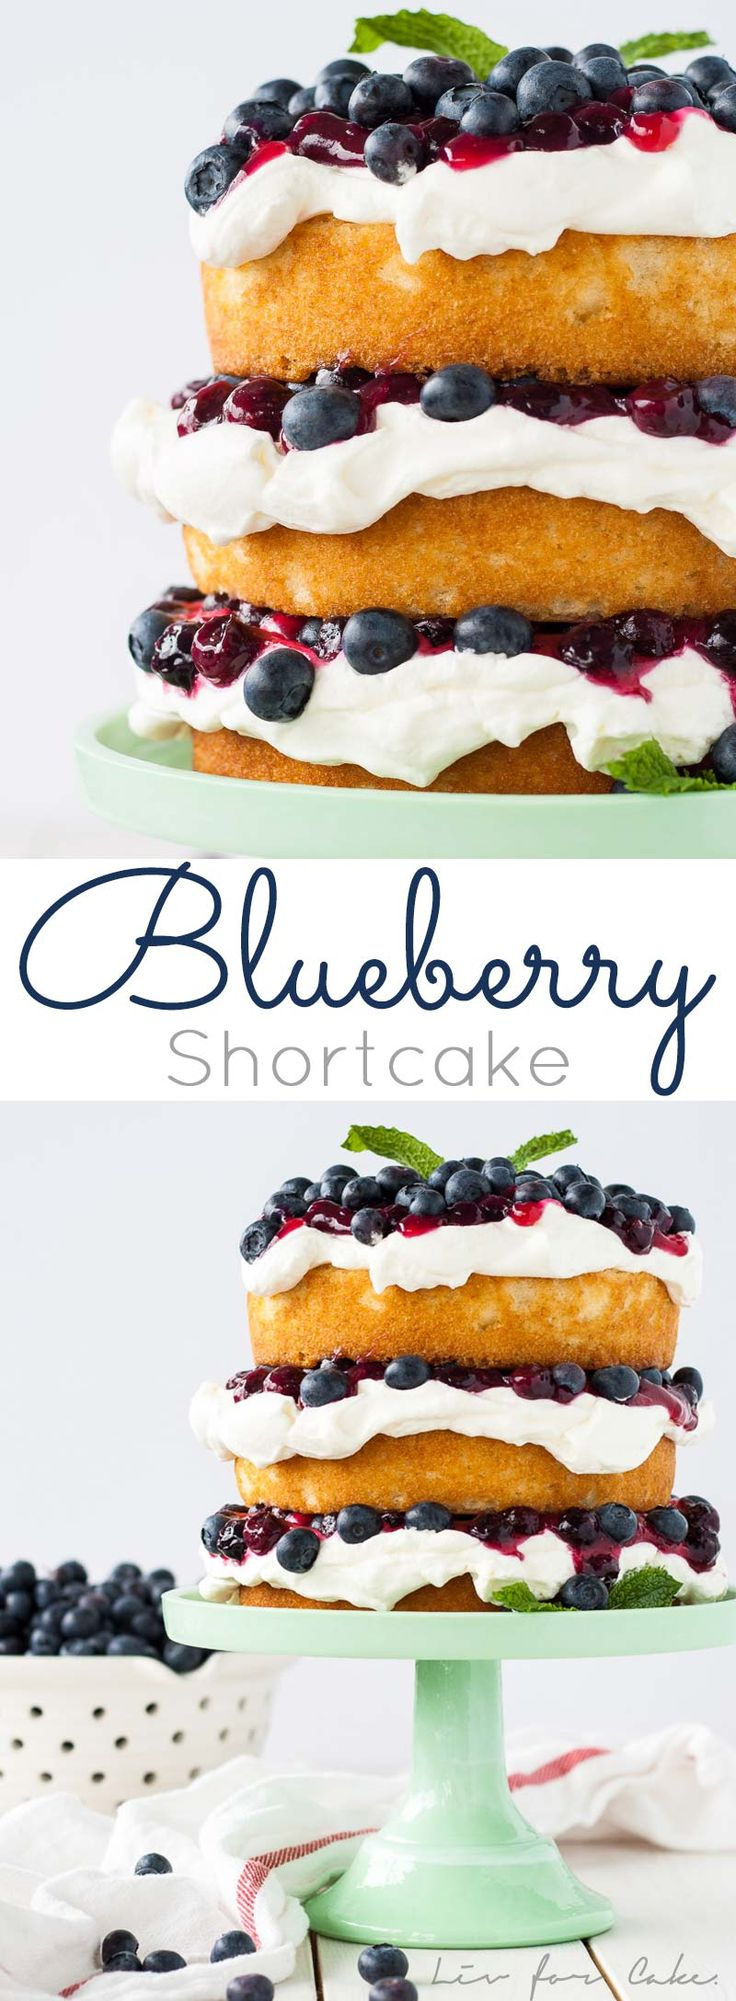 This Blueberry Shortcake is perfectly light dessert for summer. Layers of vanilla cake, whipped cream, blueberry sauce, and fresh blueberries.   livforcake.com